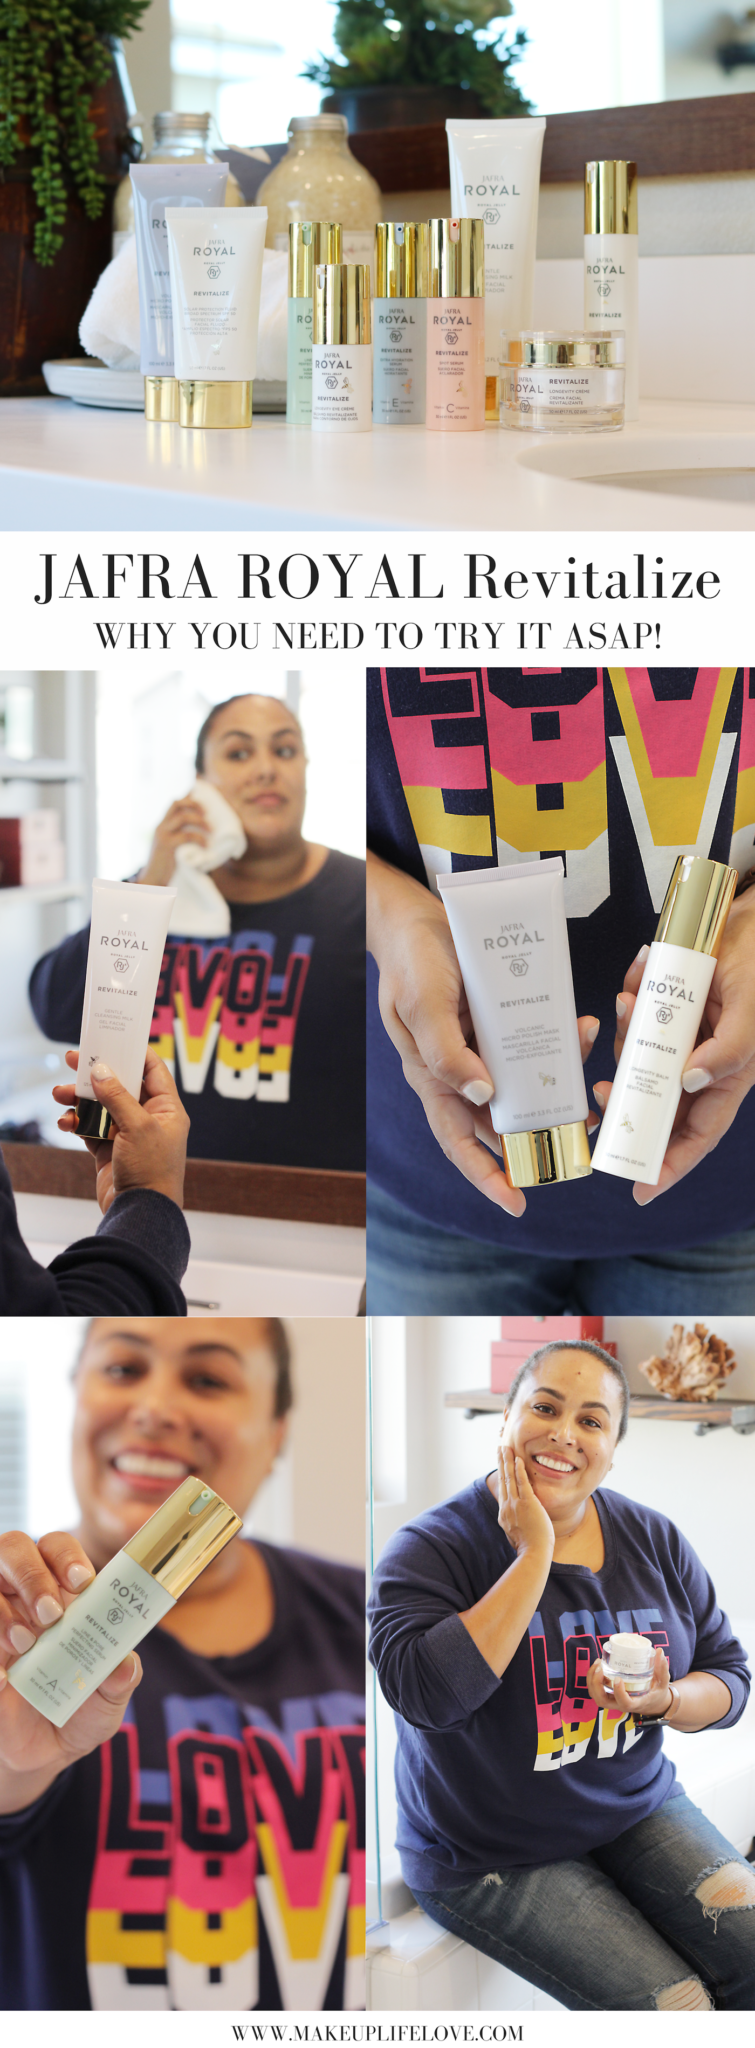 Curious why you need to try JAFRA ROYAL Revitalize? Los Angeles Skincare Blogger Makeup Life and Love is sharing her new found love for JAFRA ROYAL Revitalize here! #JAFRAROYAL #Revitalize #ad